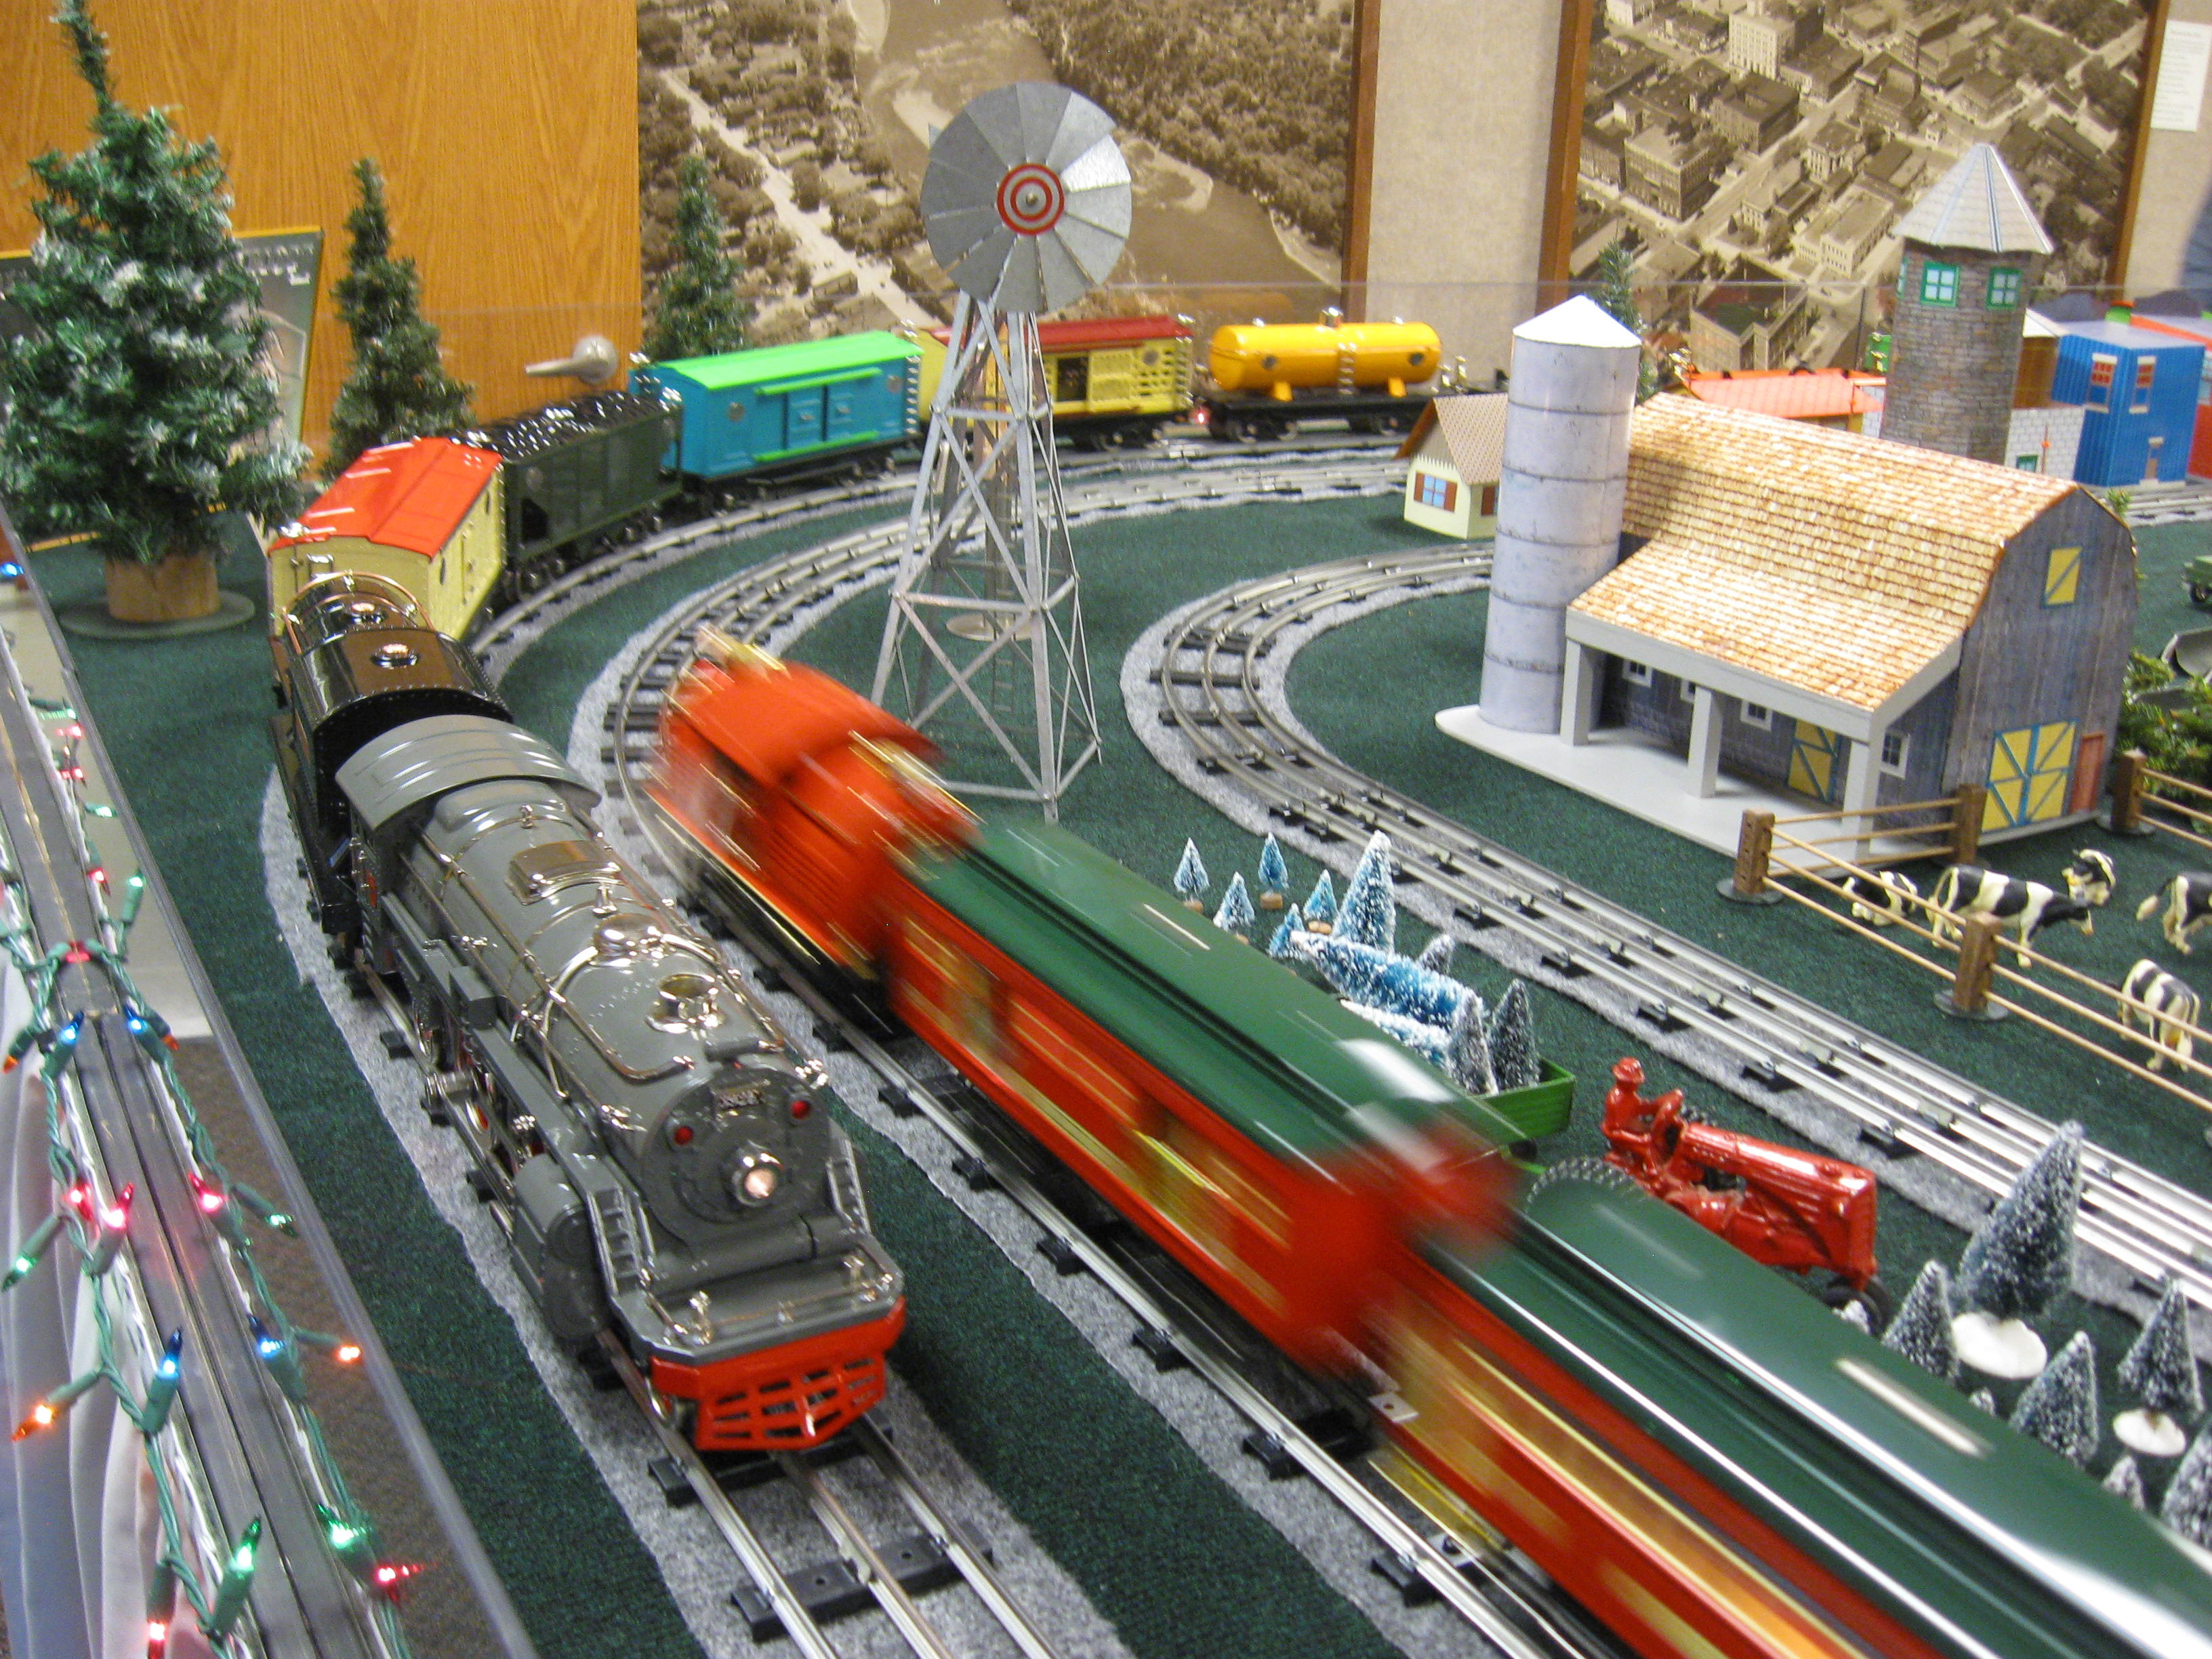 Christmas Train at the Chippewa Valley Museum - Photo by: Chippewa Valley Museum